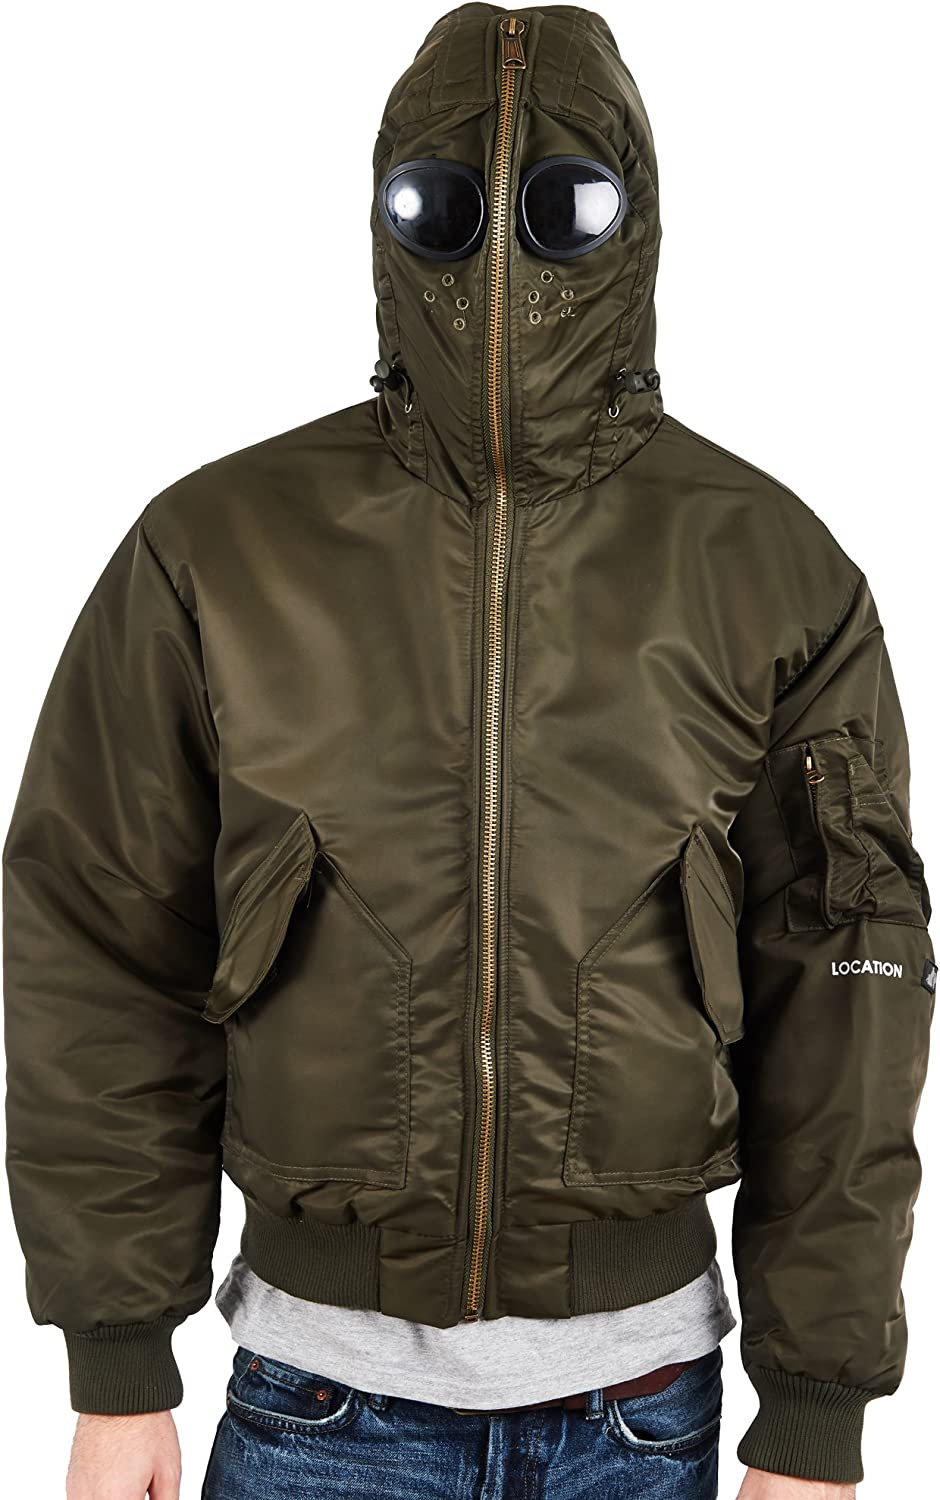 Details about Mens Location Galactic Airmans Waterproof Goggle Jacket Military Hooded Coat